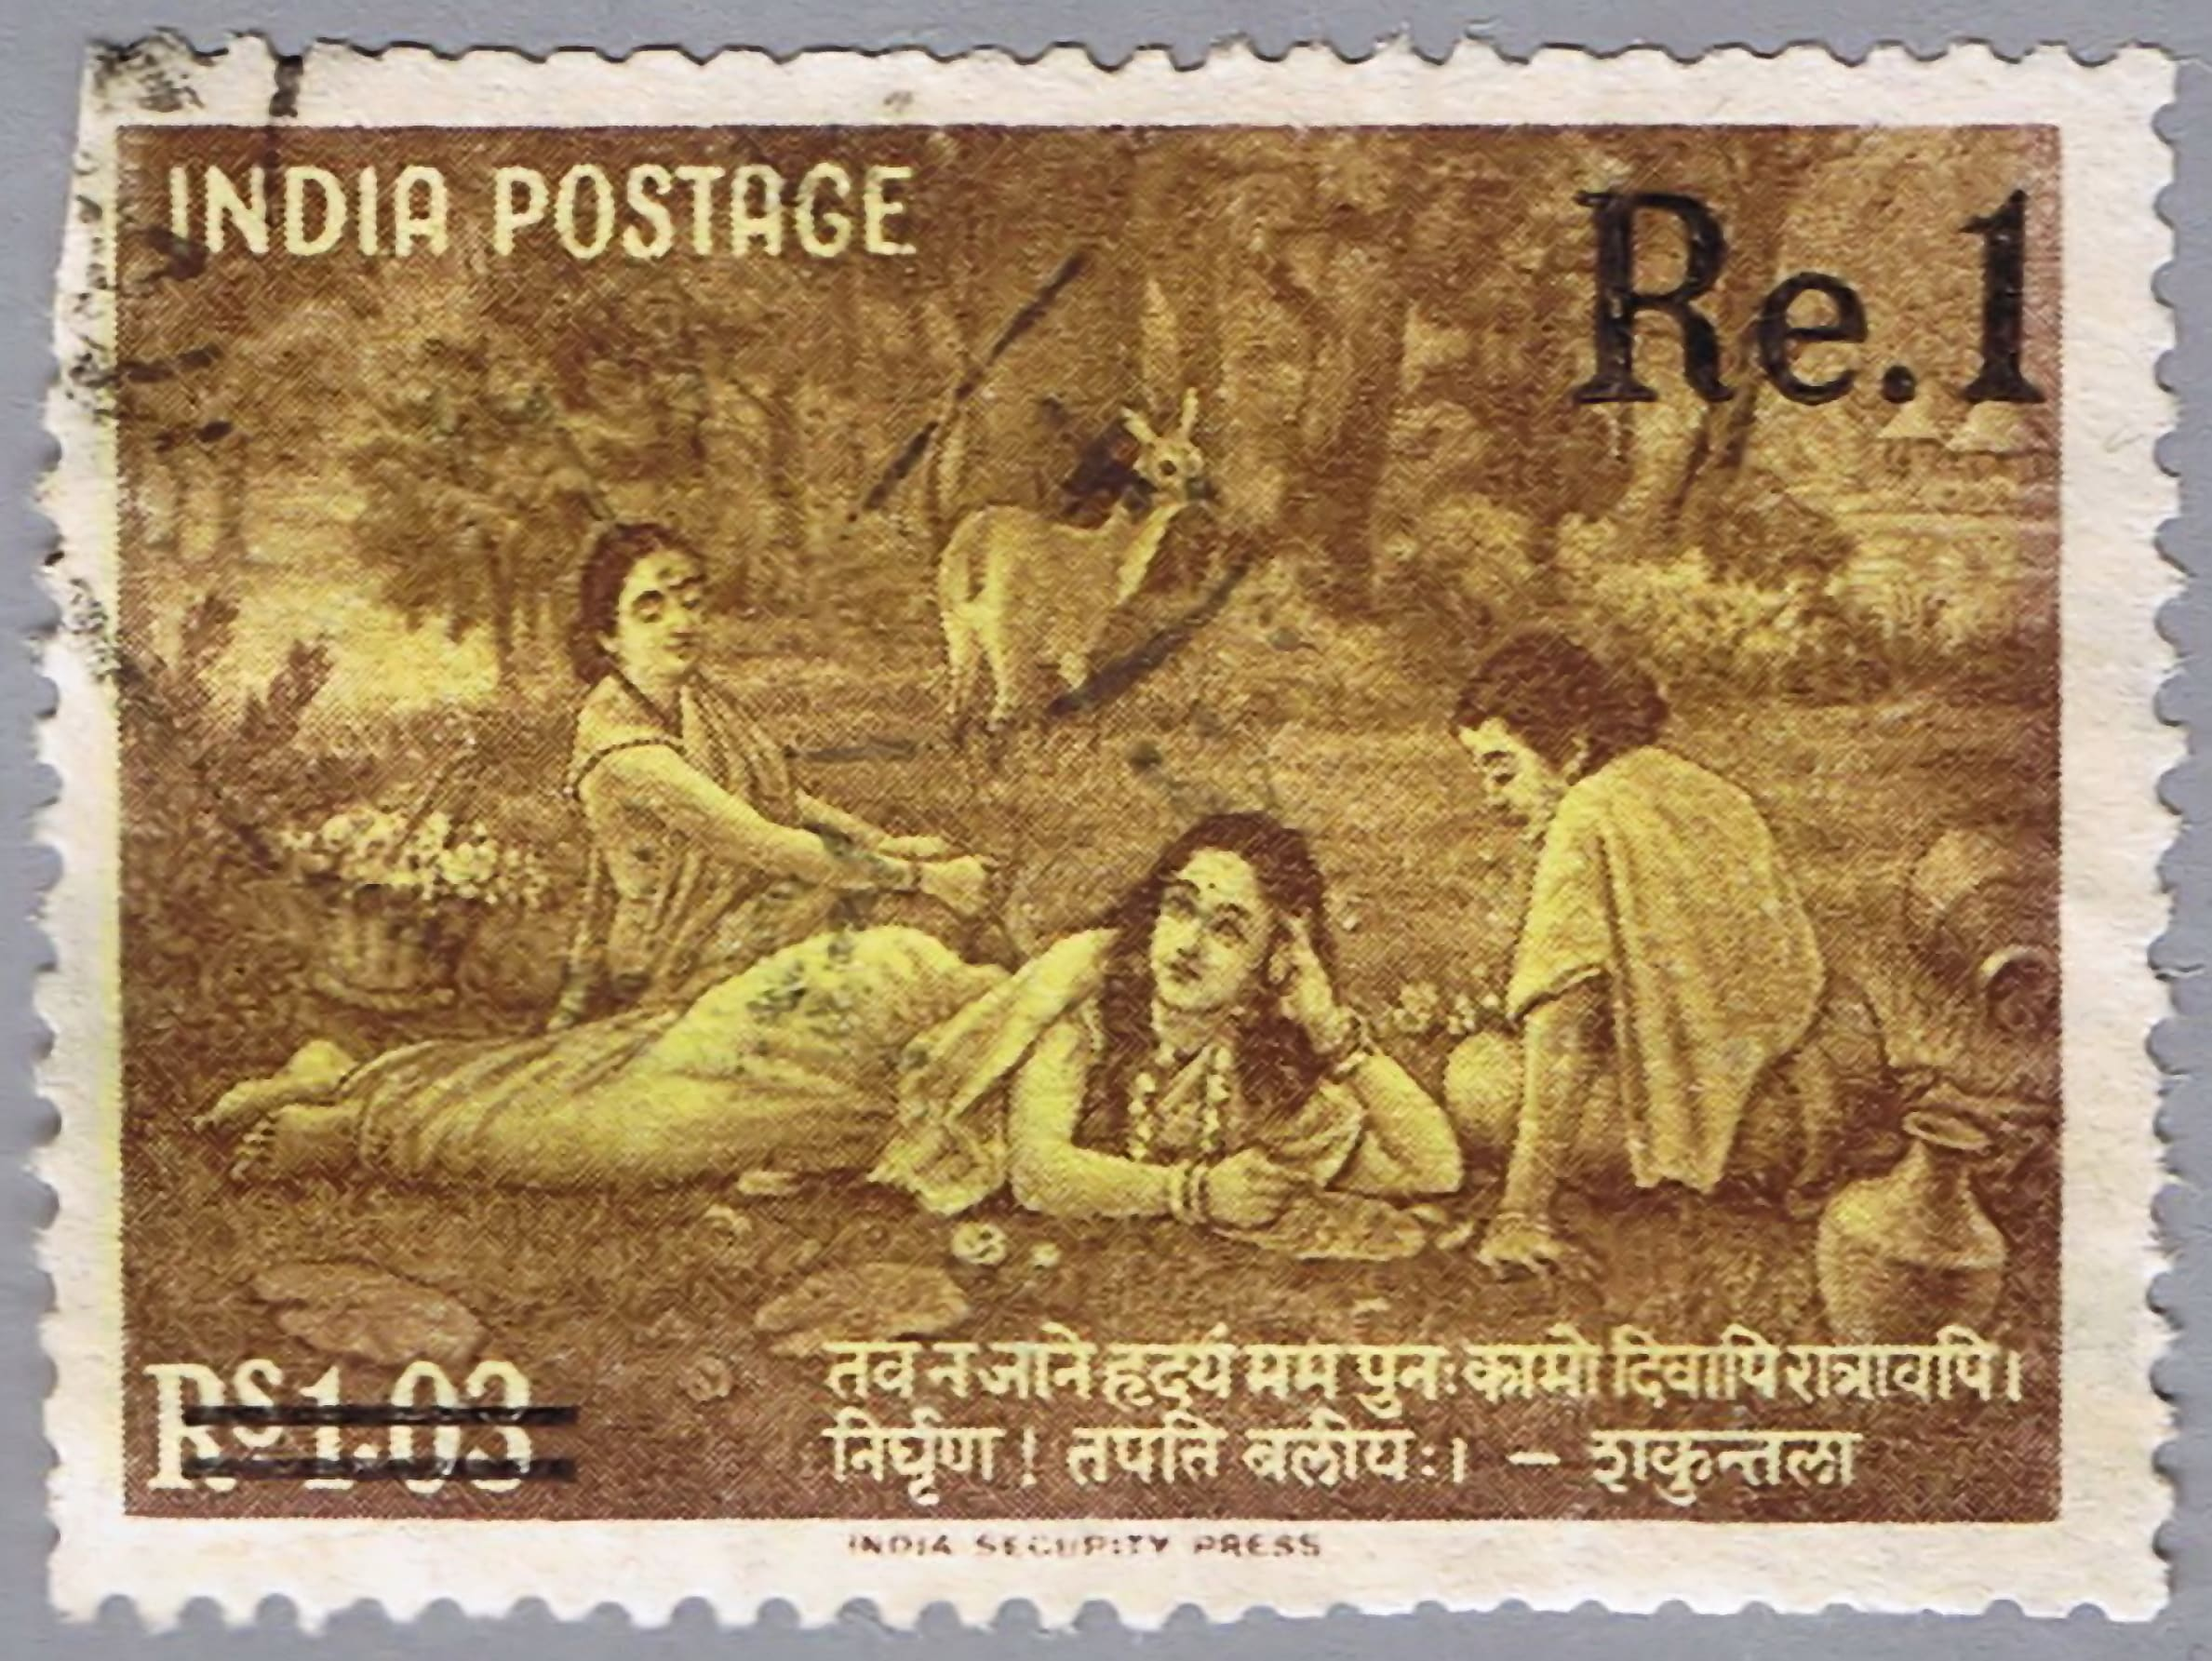 A postage stamp based on a scene from Abhijnanashakuntalam, also known as Shakuntala.  The Sanskrit play of Kalidasa is based on the story of Shakuntala in the Mahabharata.  (Shutterstock)